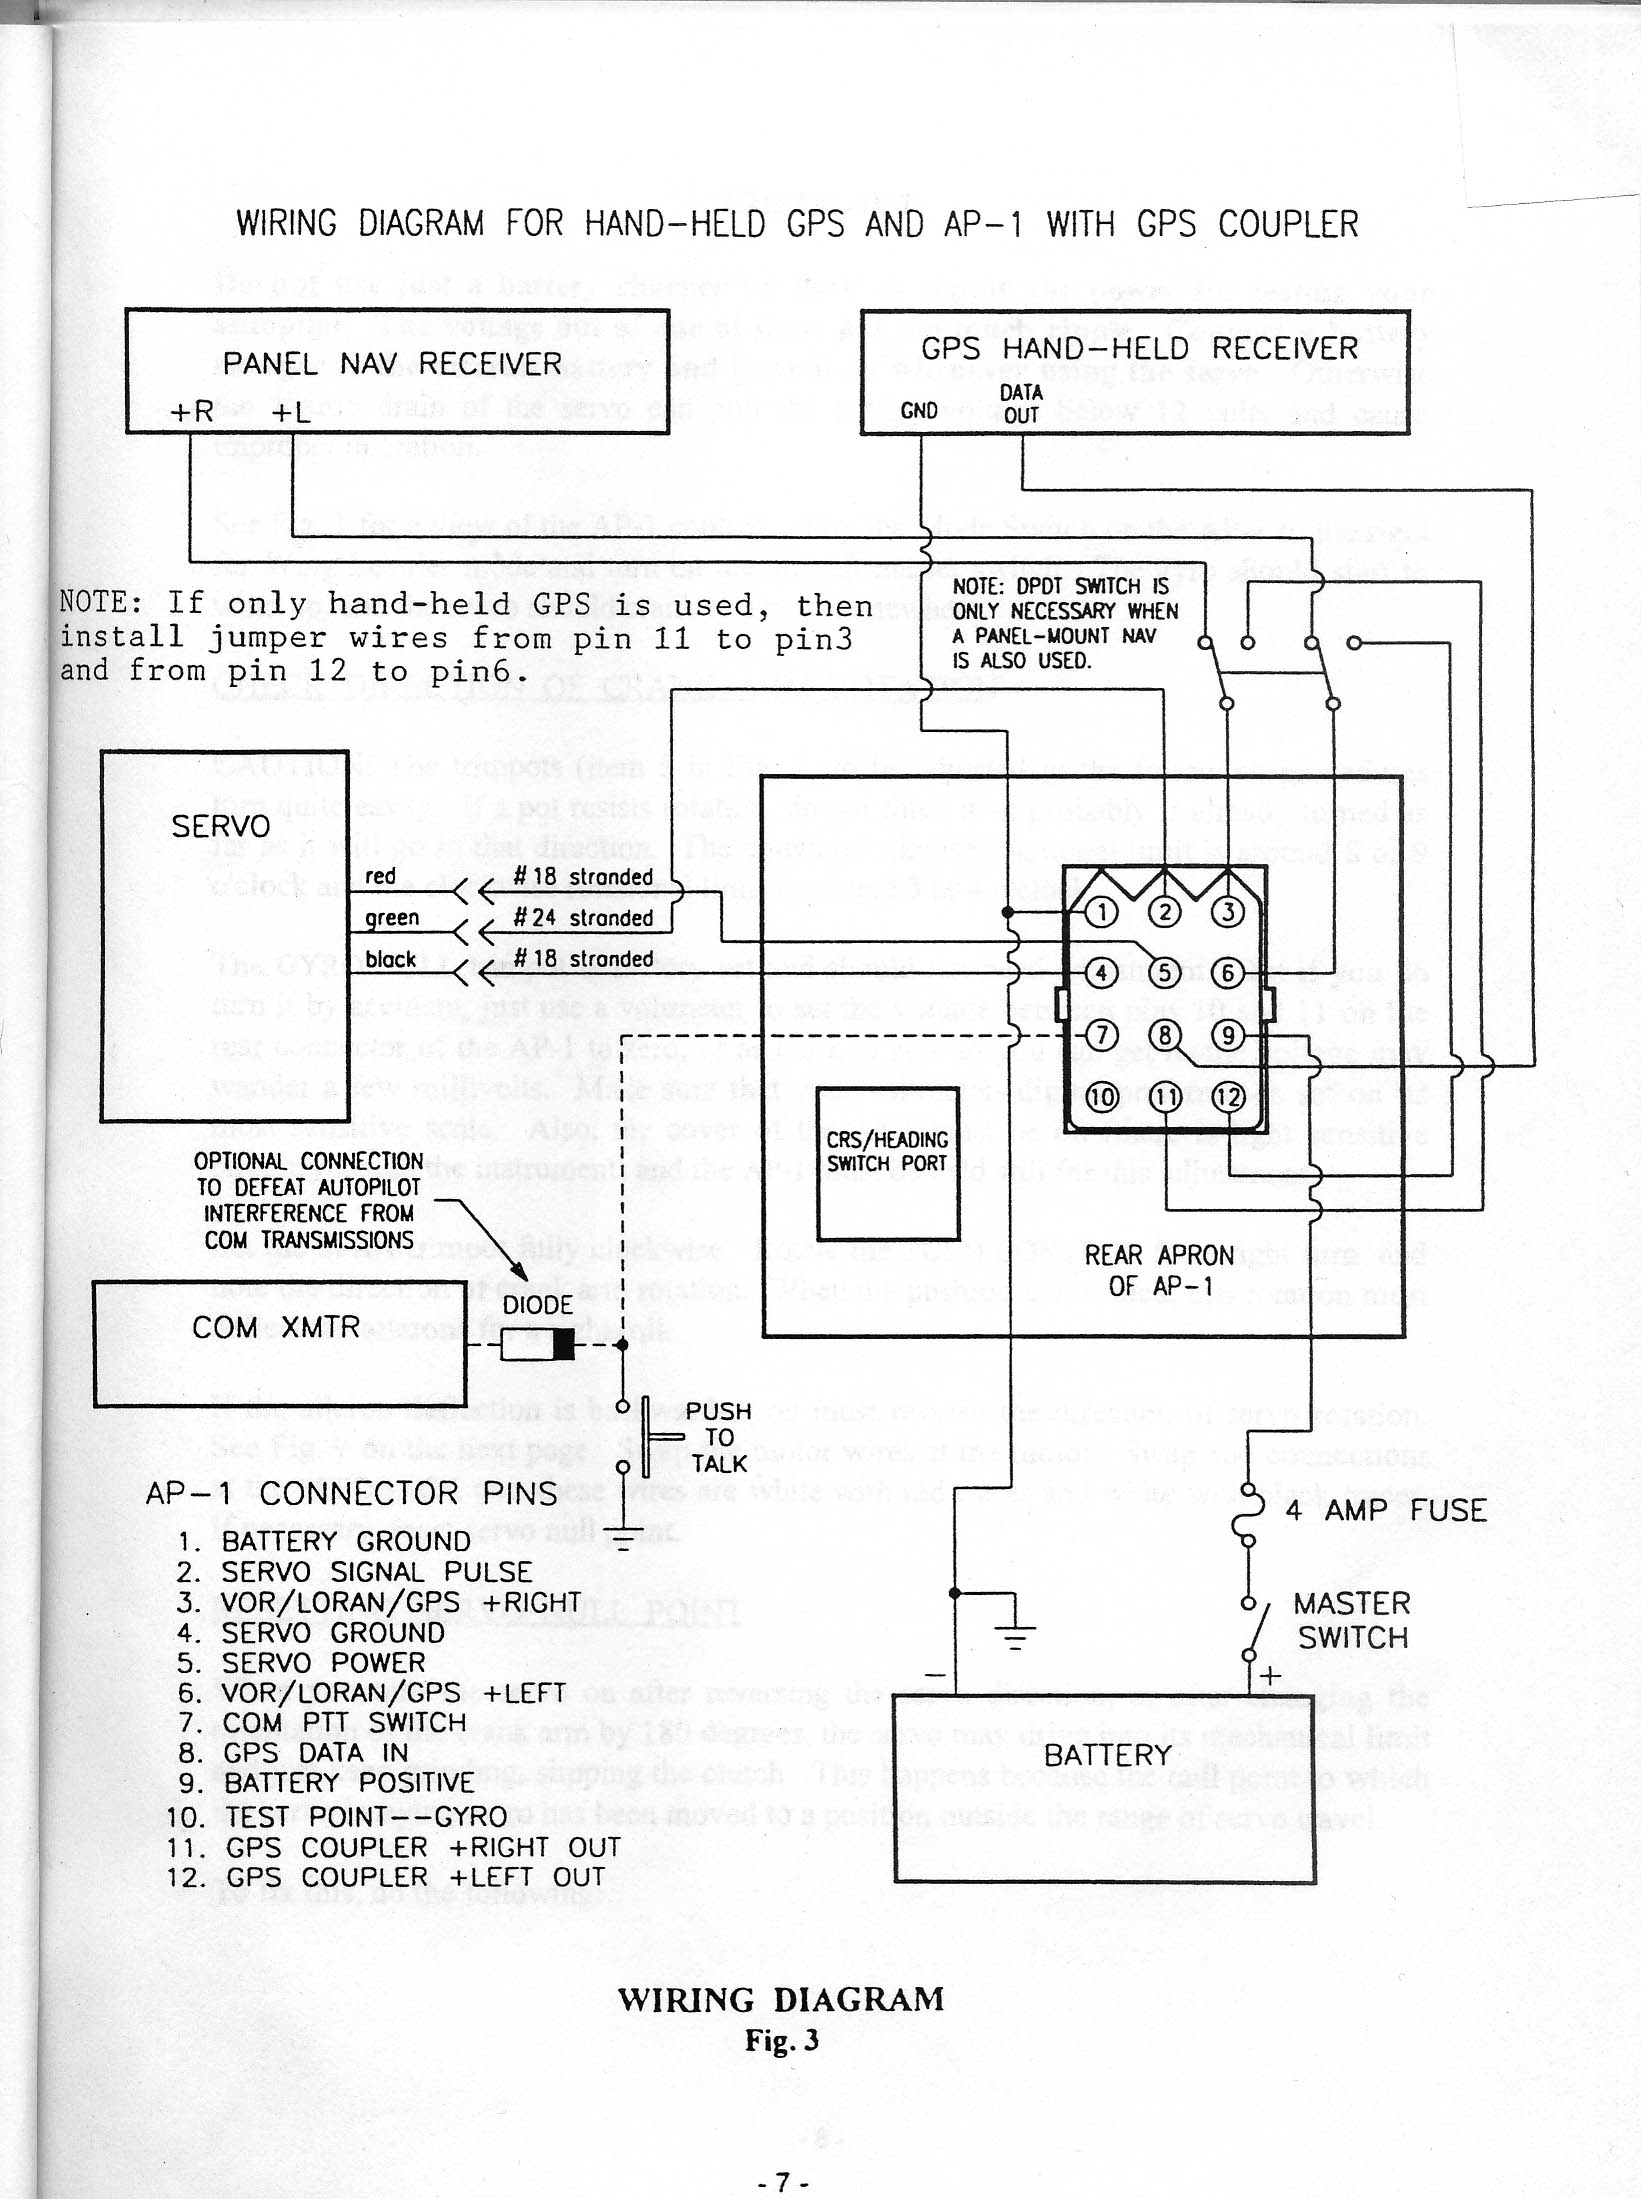 diagram king ky 92 wiring diagram automotive wiring diagrams \u2022 wiring king ka 134 audio panel wiring diagram at mifinder.co